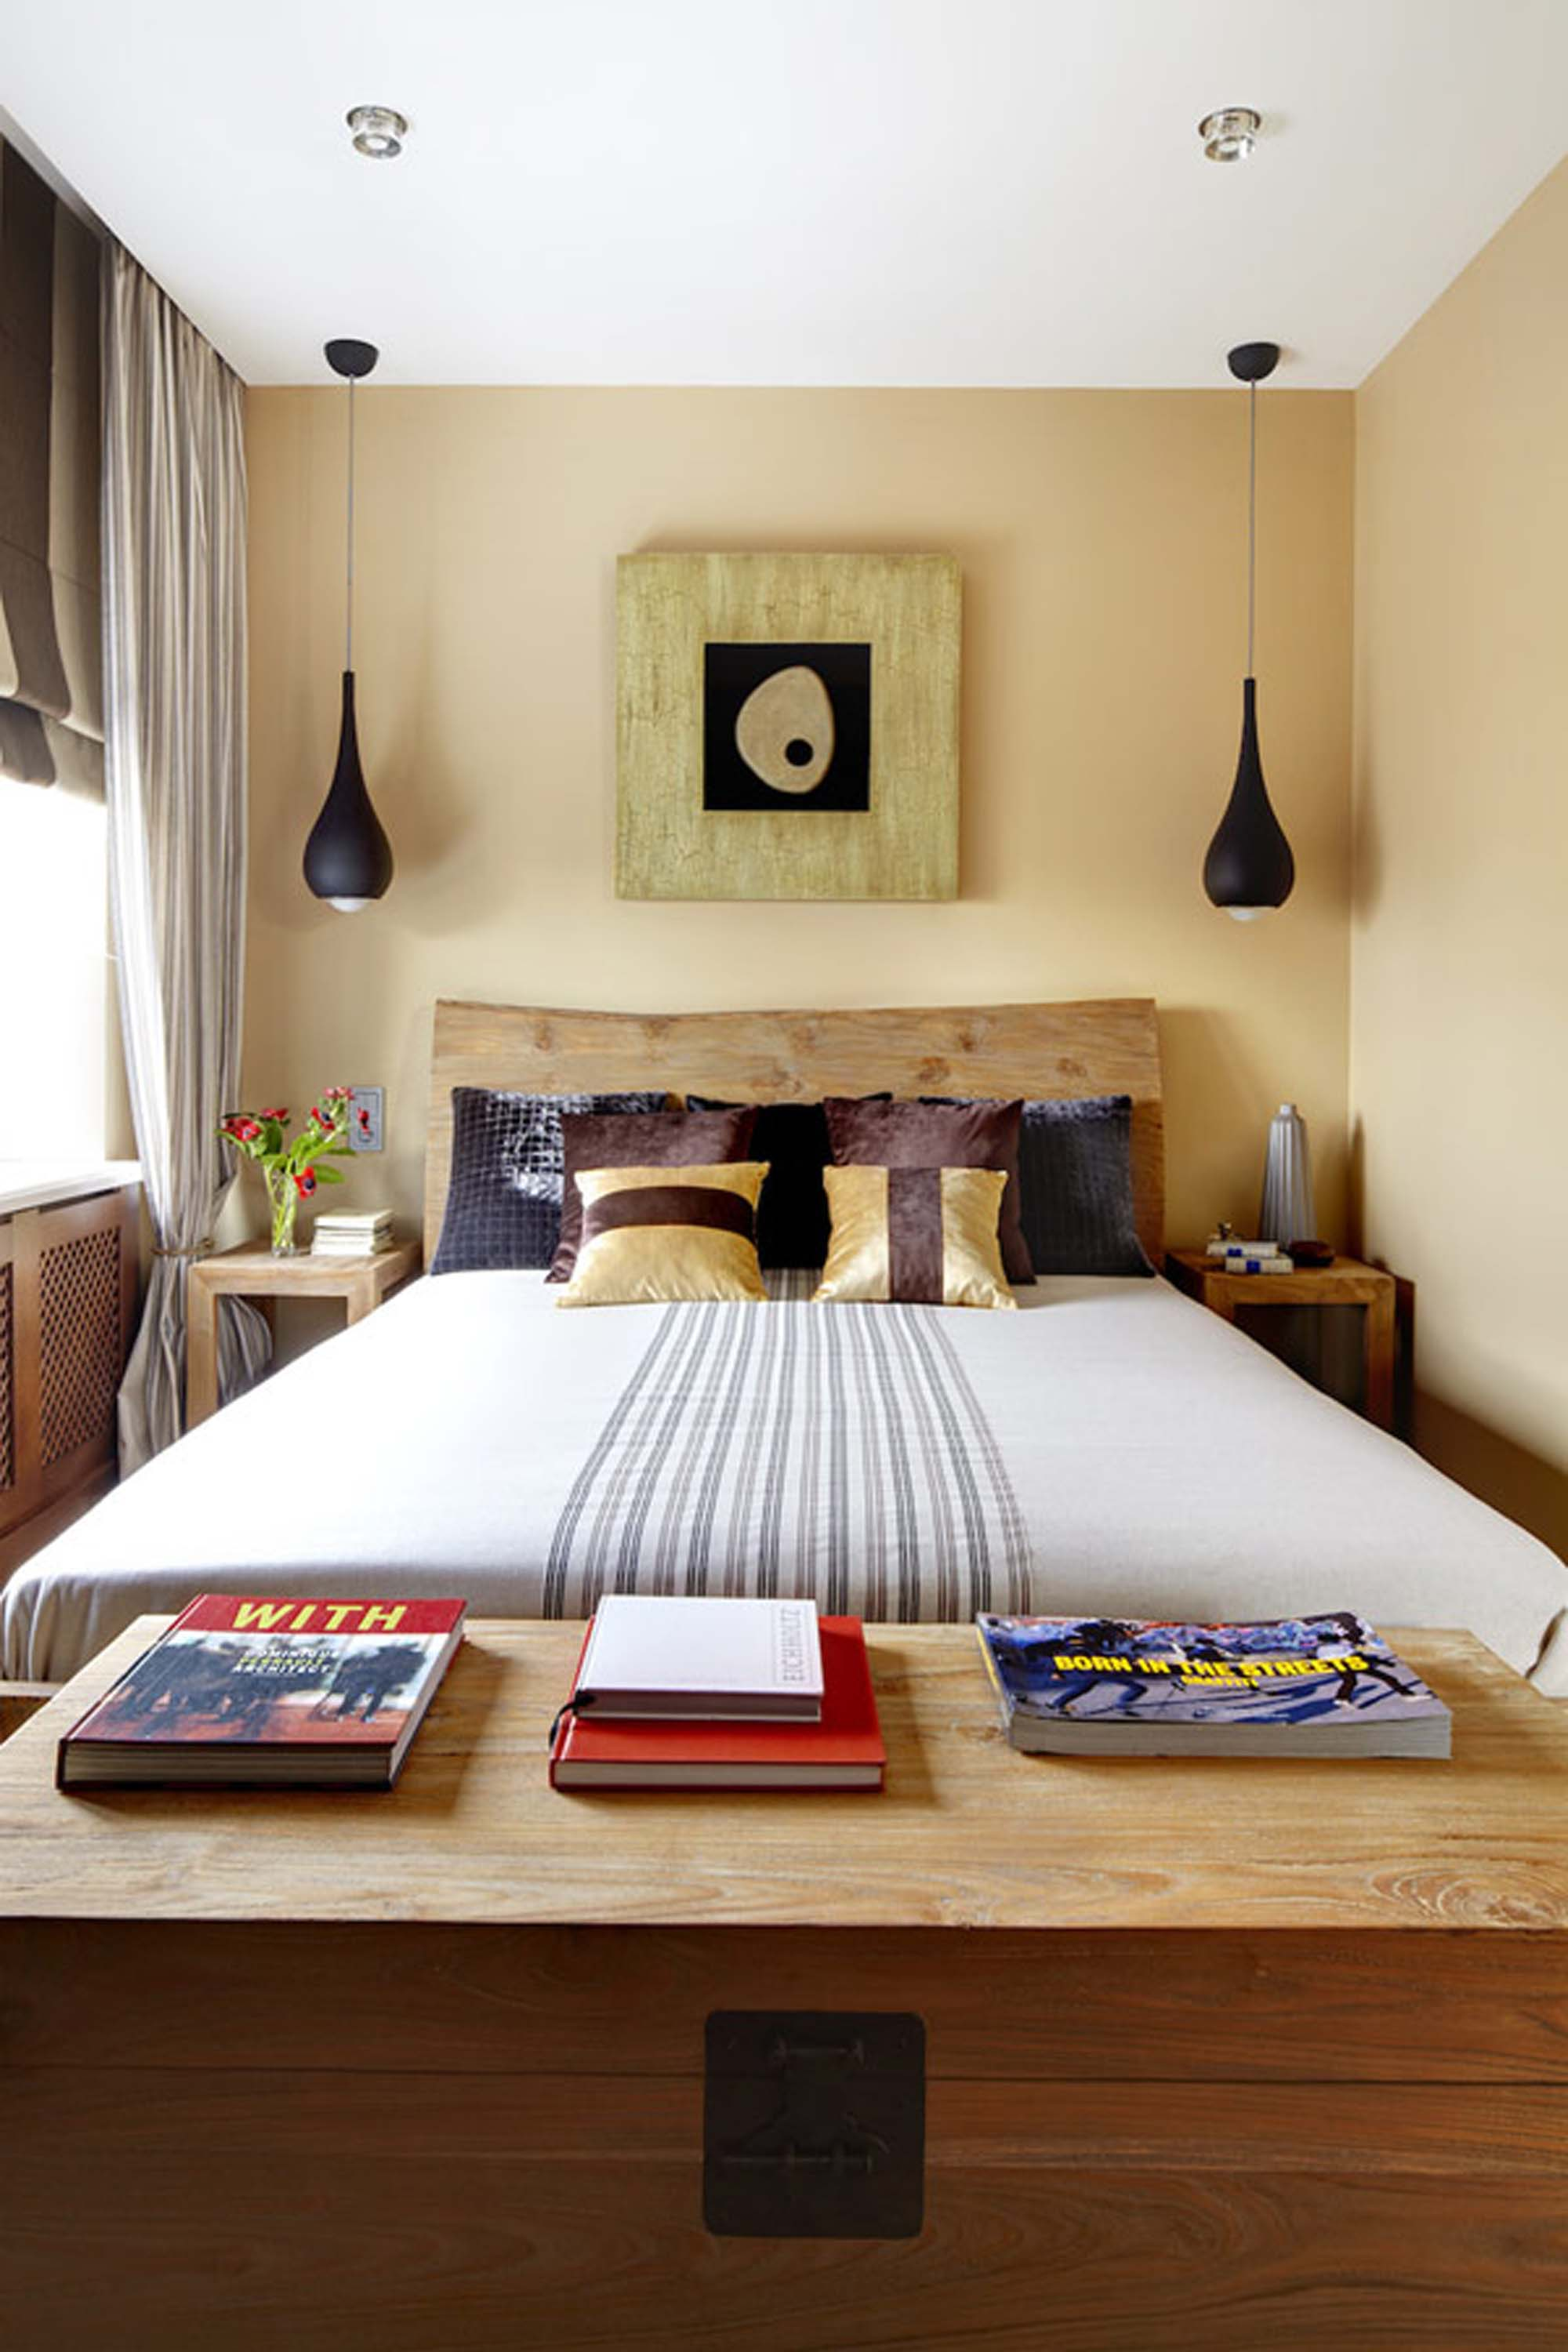 master bedroom Ideas For Decorating a Small Master Bedroom paint colors for outstanding small bedroom interior design and decoration with unique wooden furnitures big window also beige wall des bedroom with big window bedroom bedroom ideas pinterest lamp